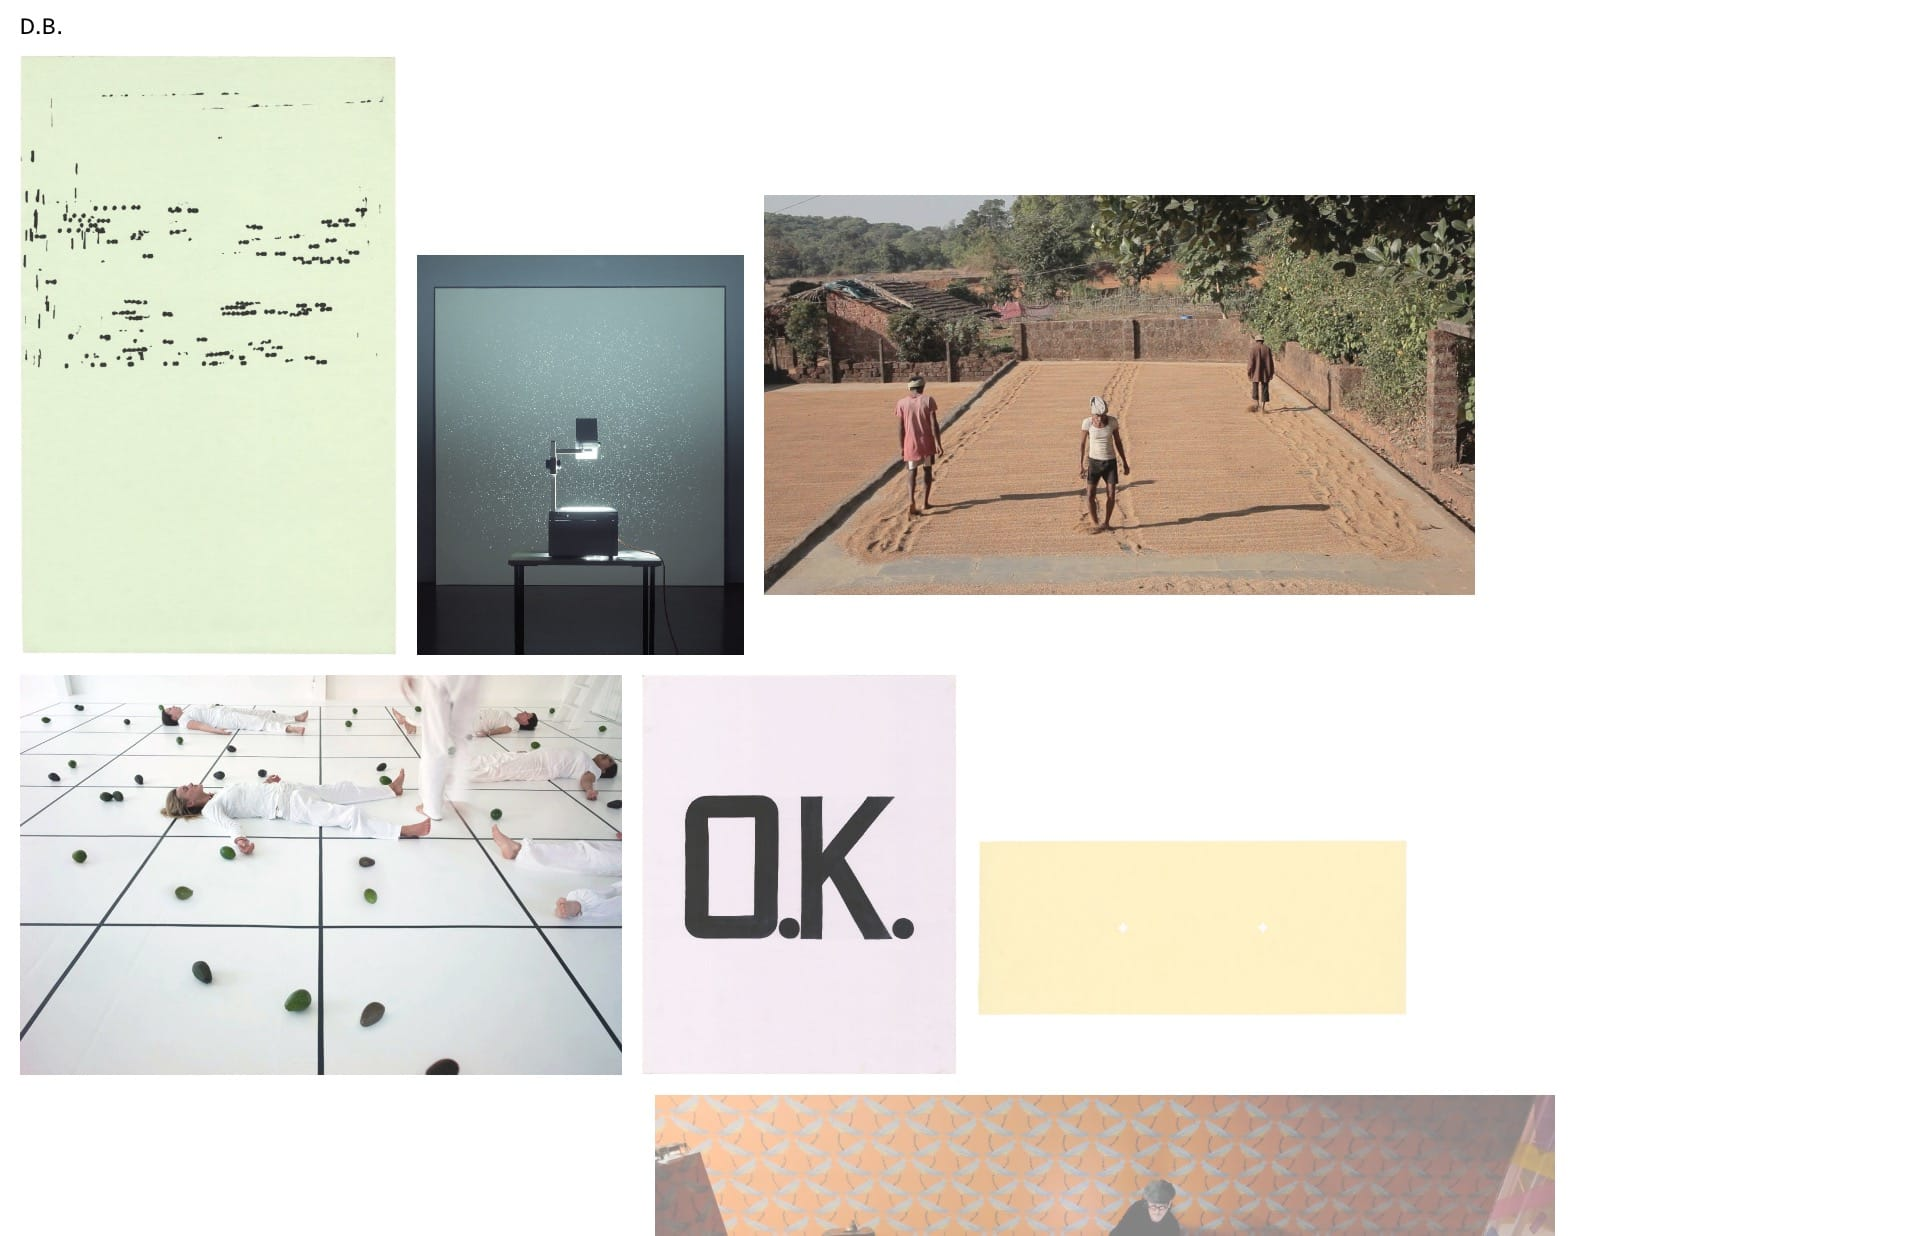 Screenshot of the website David Blamey, featured on The Gallery, a curated collection of minimal websites